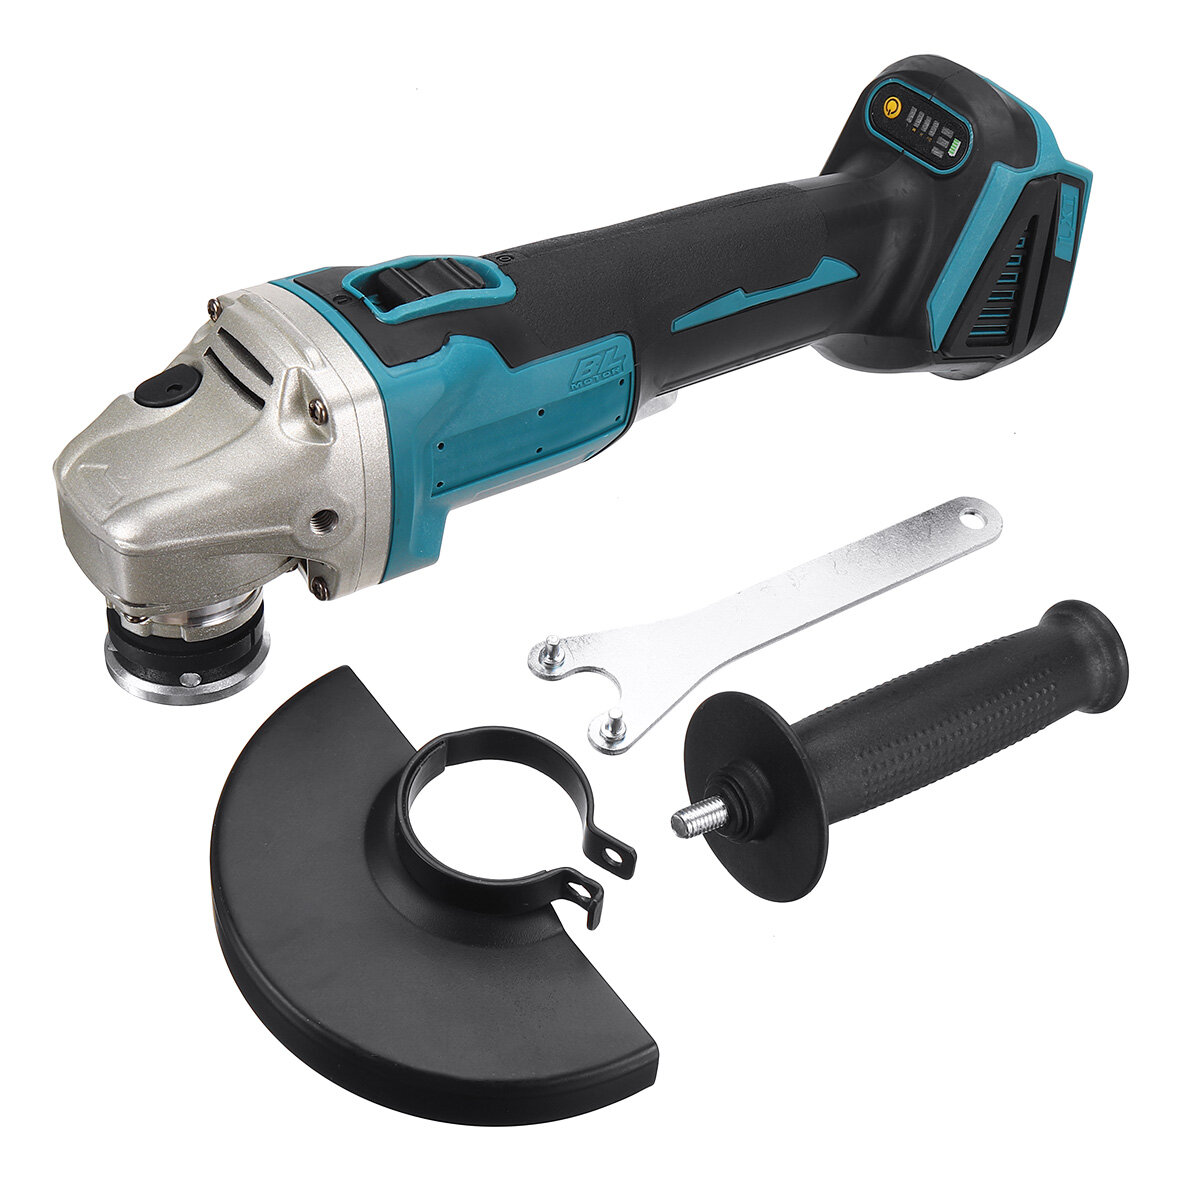 800W 125mm Electric Angle Grinder Cutting Grinding Sander Corded Replace Tool For Makita 18V Battery